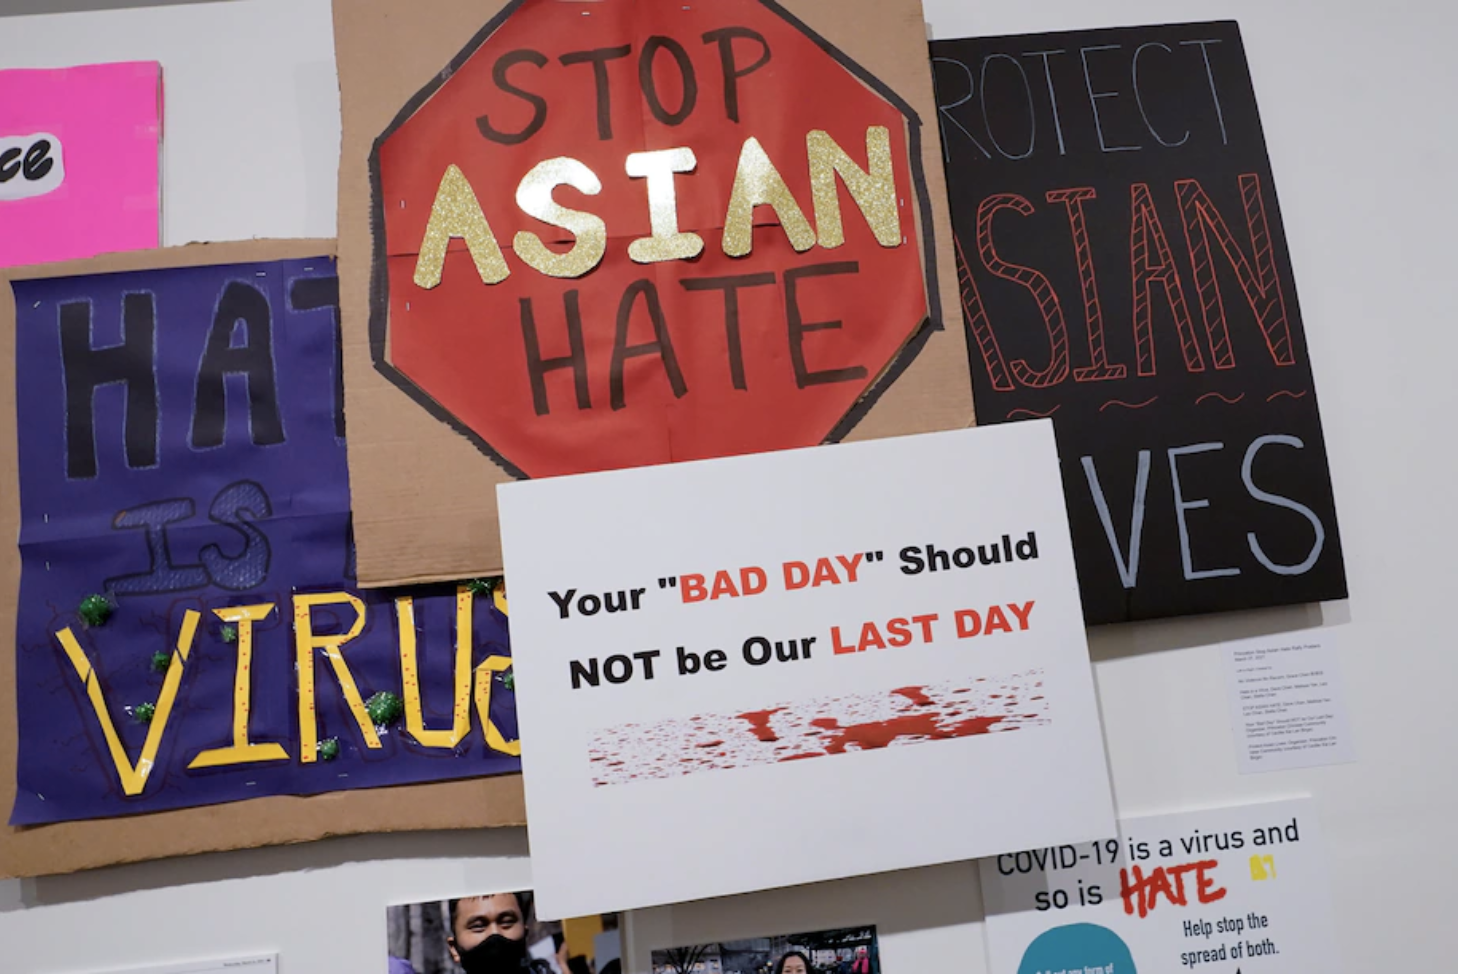 Hate crimes rise to highest level in 12 years amid increasing attacks on Black and Asian people, FBI says